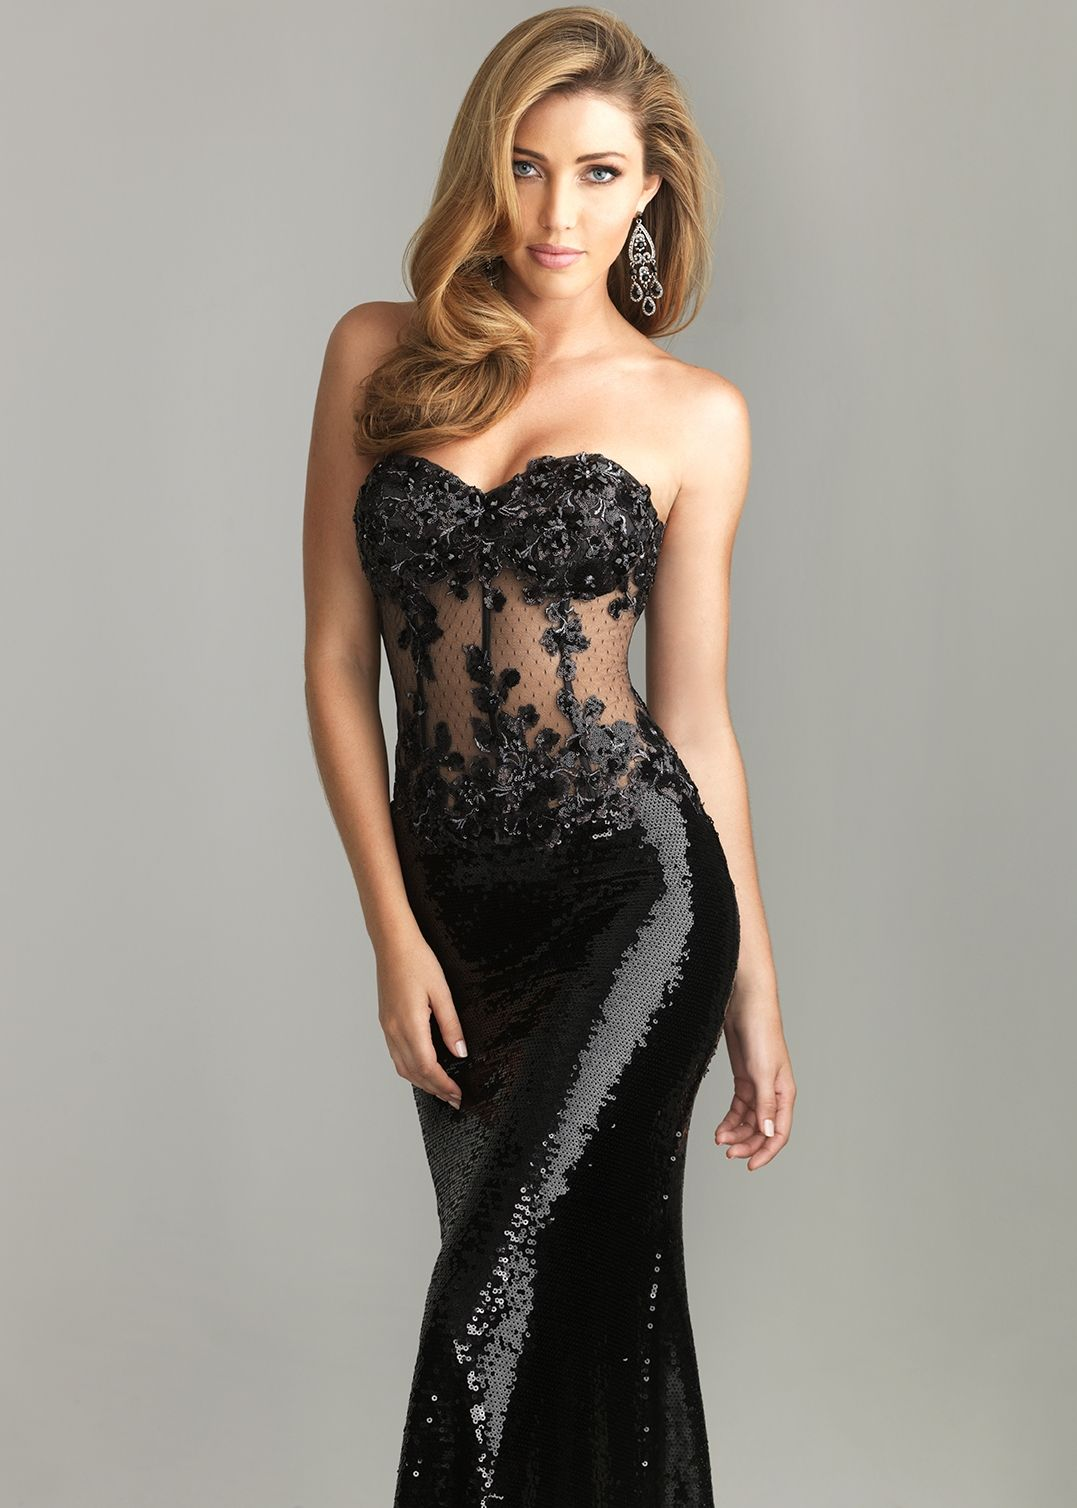 Black dress for prom night - Sexy Black Sequin Corset Prom Dress Formal Gowns Night Moves 6611 Thepromdresses